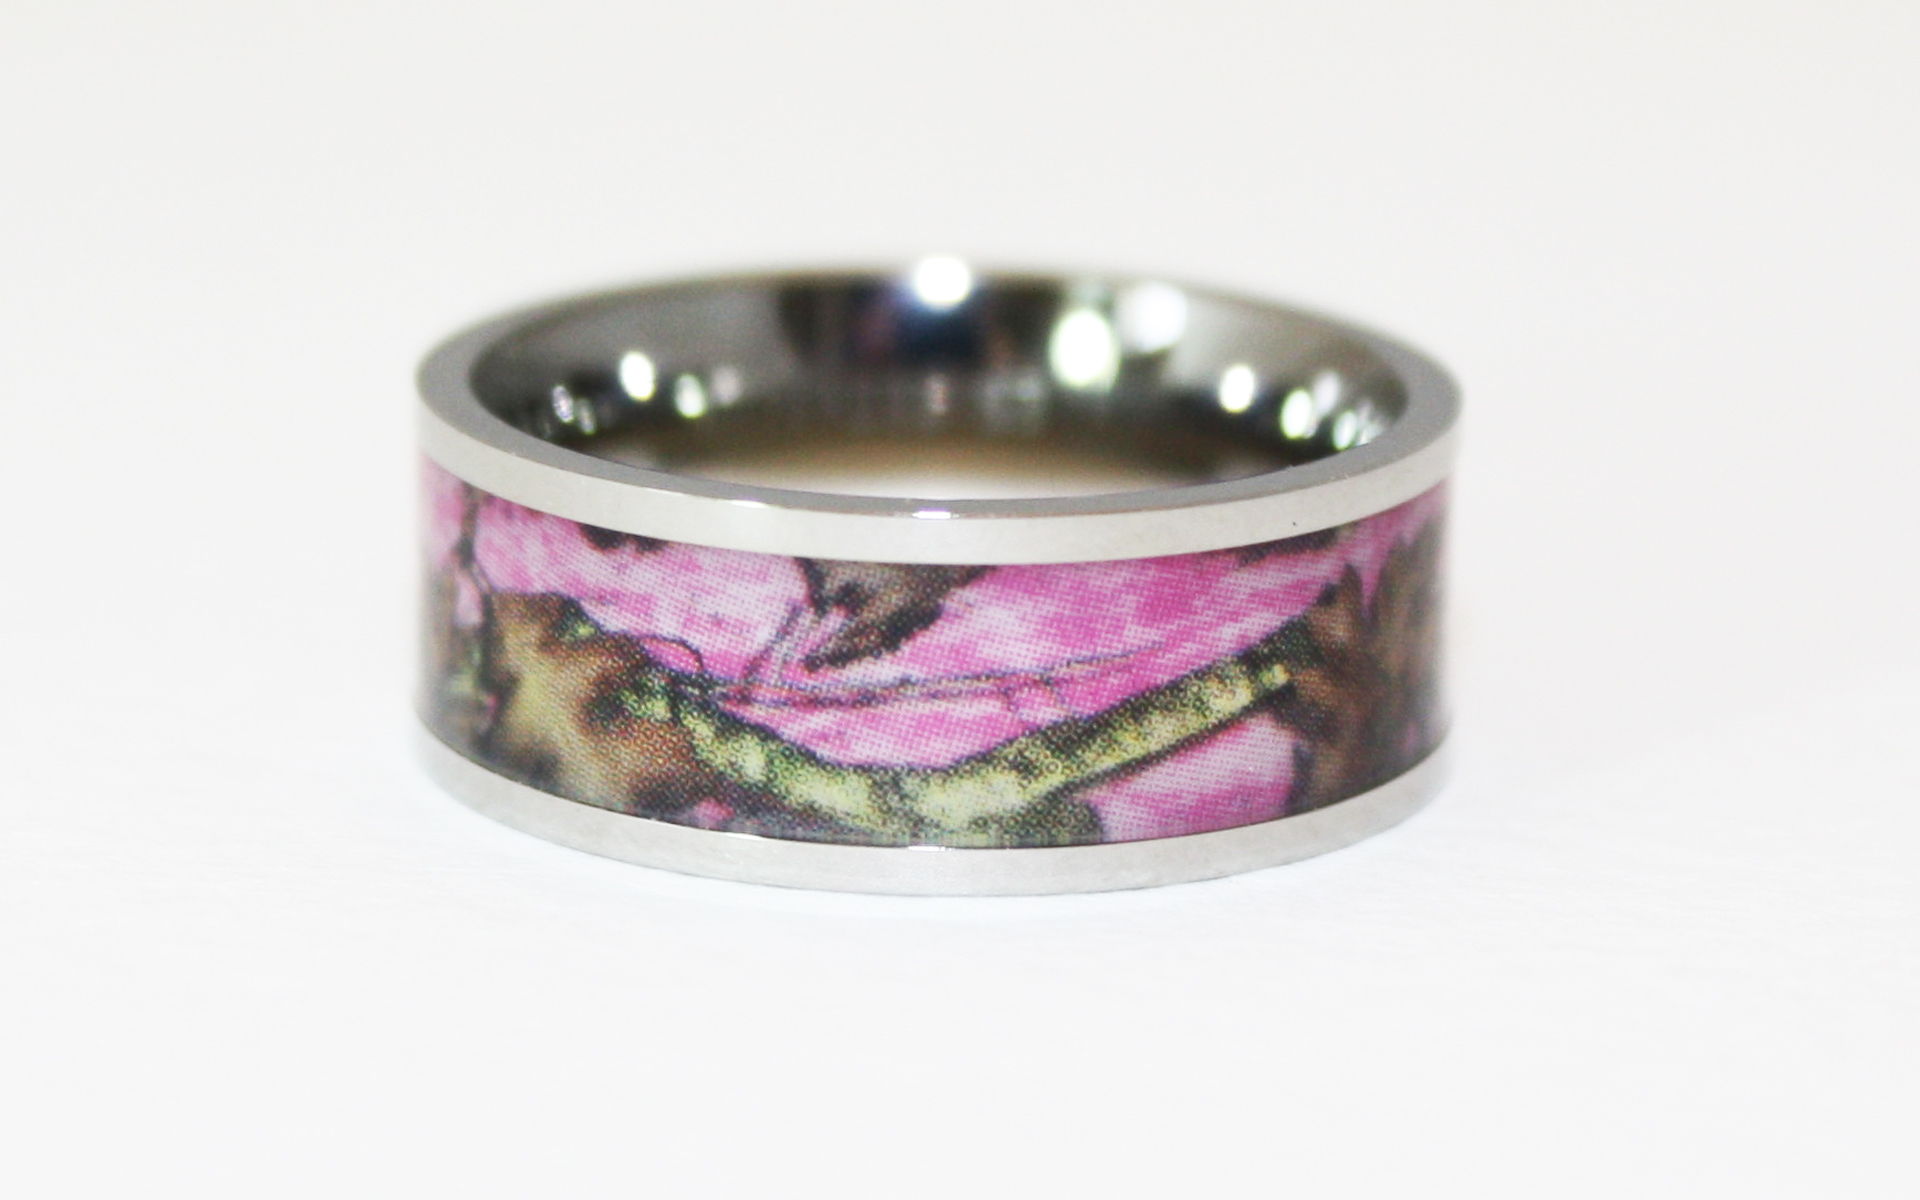 camouflage wedding bands